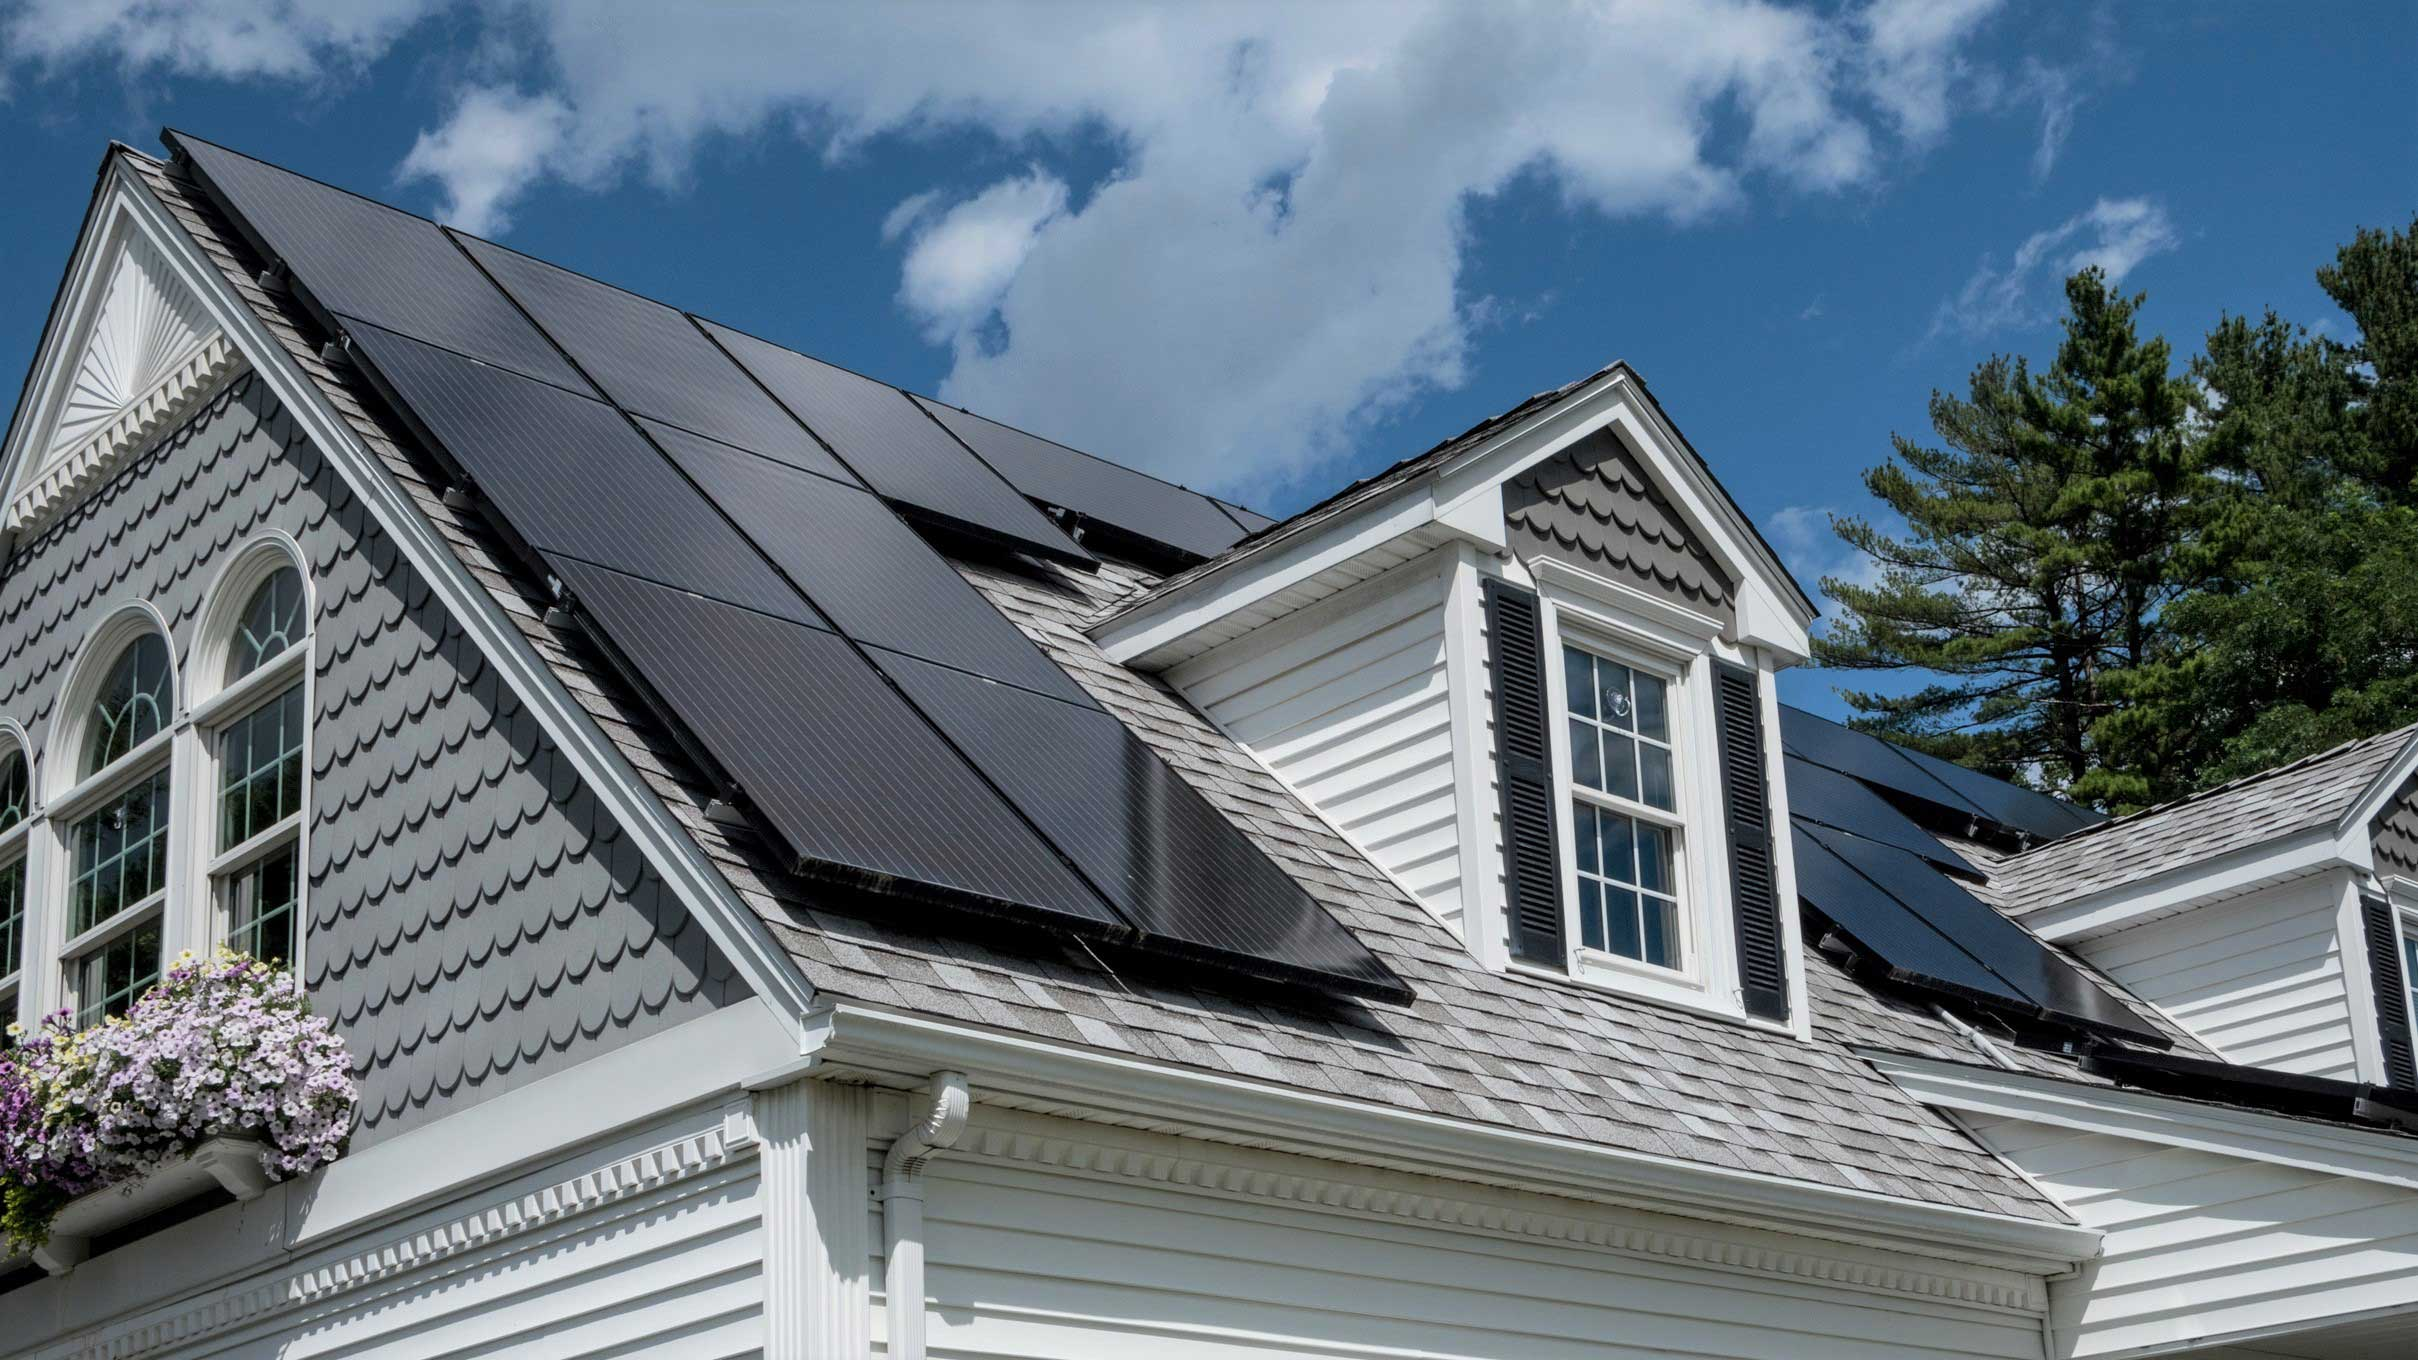 Solar Panel Payback Period: How Long Does It Take to Break Even?